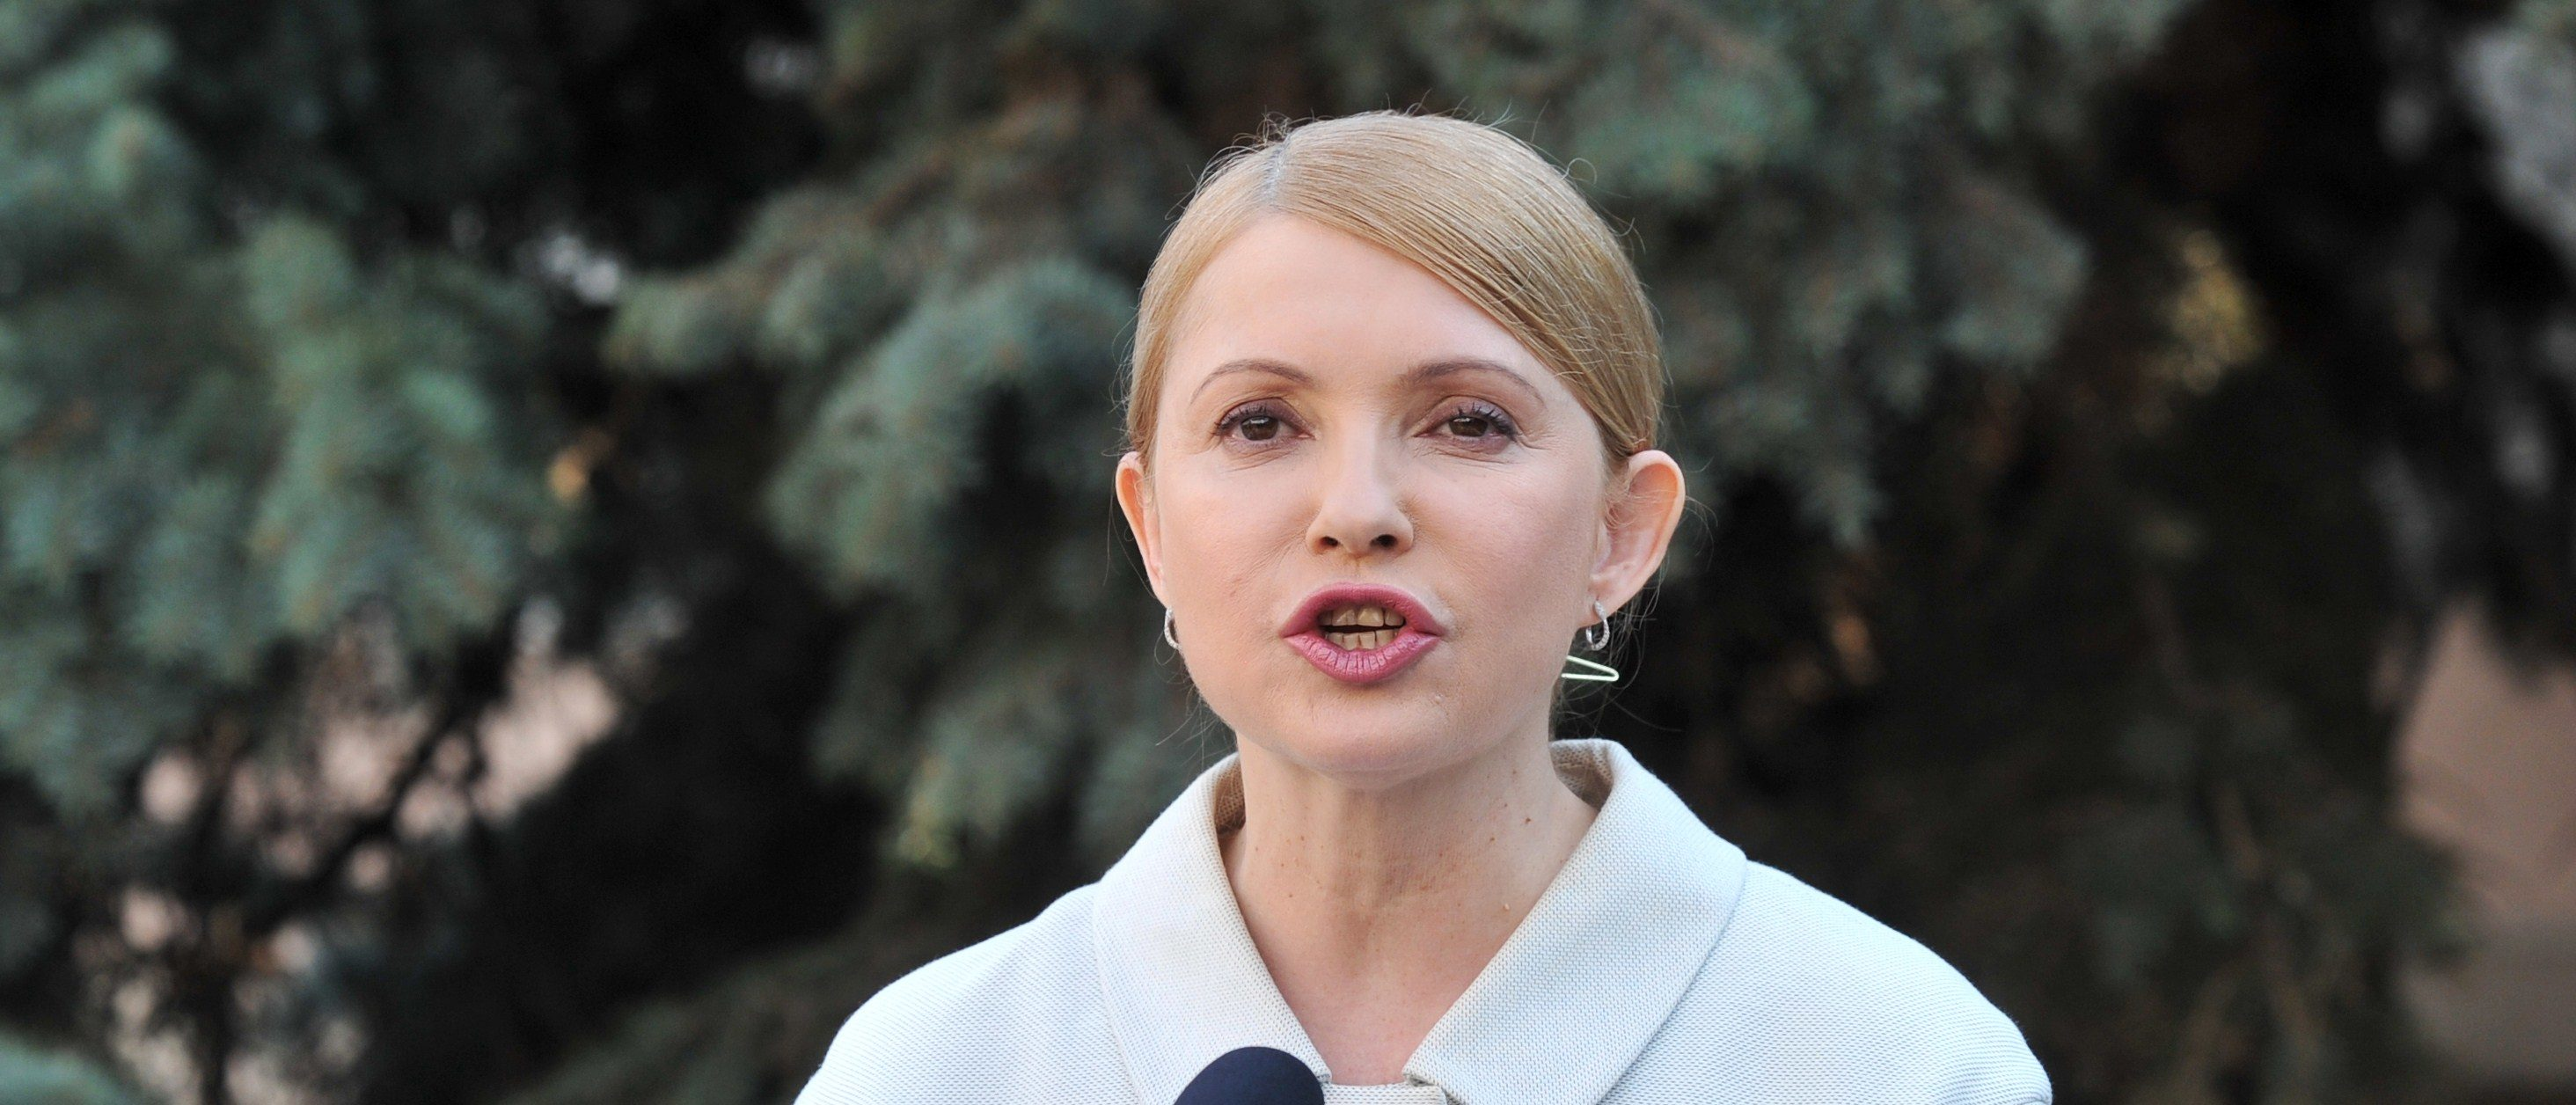 Former Ukrainian prime minister and opposition leader Yulia Tymoshenko speaks during a press conference in Kiev on March 27, 2014. Ukraine's formerly jailed divisive opposition icon Yulia Tymoshenko completed an improbable return to politics on March 27 following her release on February 22, by confirming plans to run for president in elections on May 25. AFP PHOTO/GENYA SAVILOV (Photo credit should read GENYA SAVILOV/AFP/Getty Images)